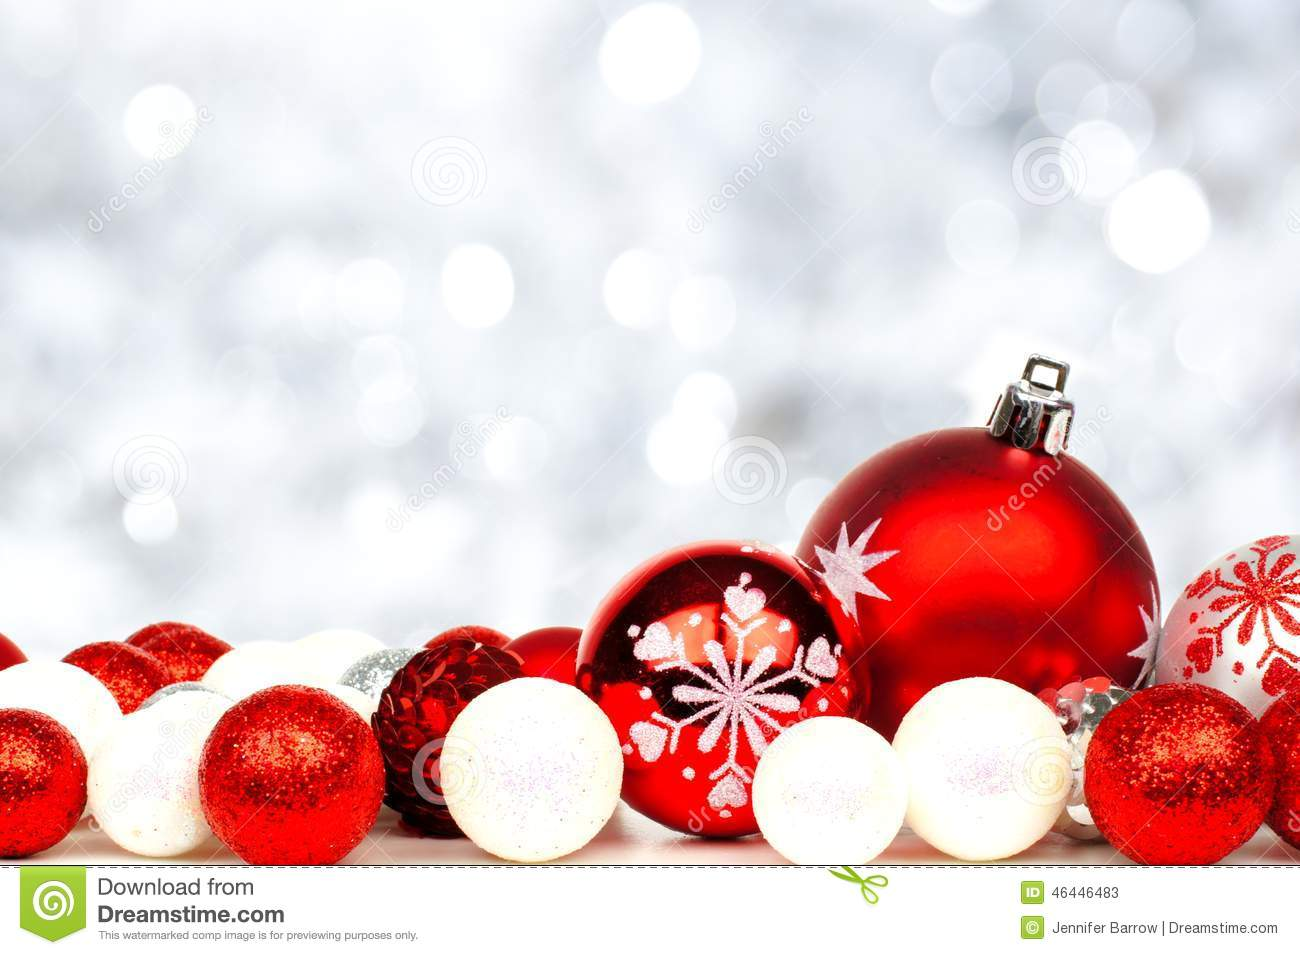 Red And White Christmas Ornament Border Stock Image - Image of ...